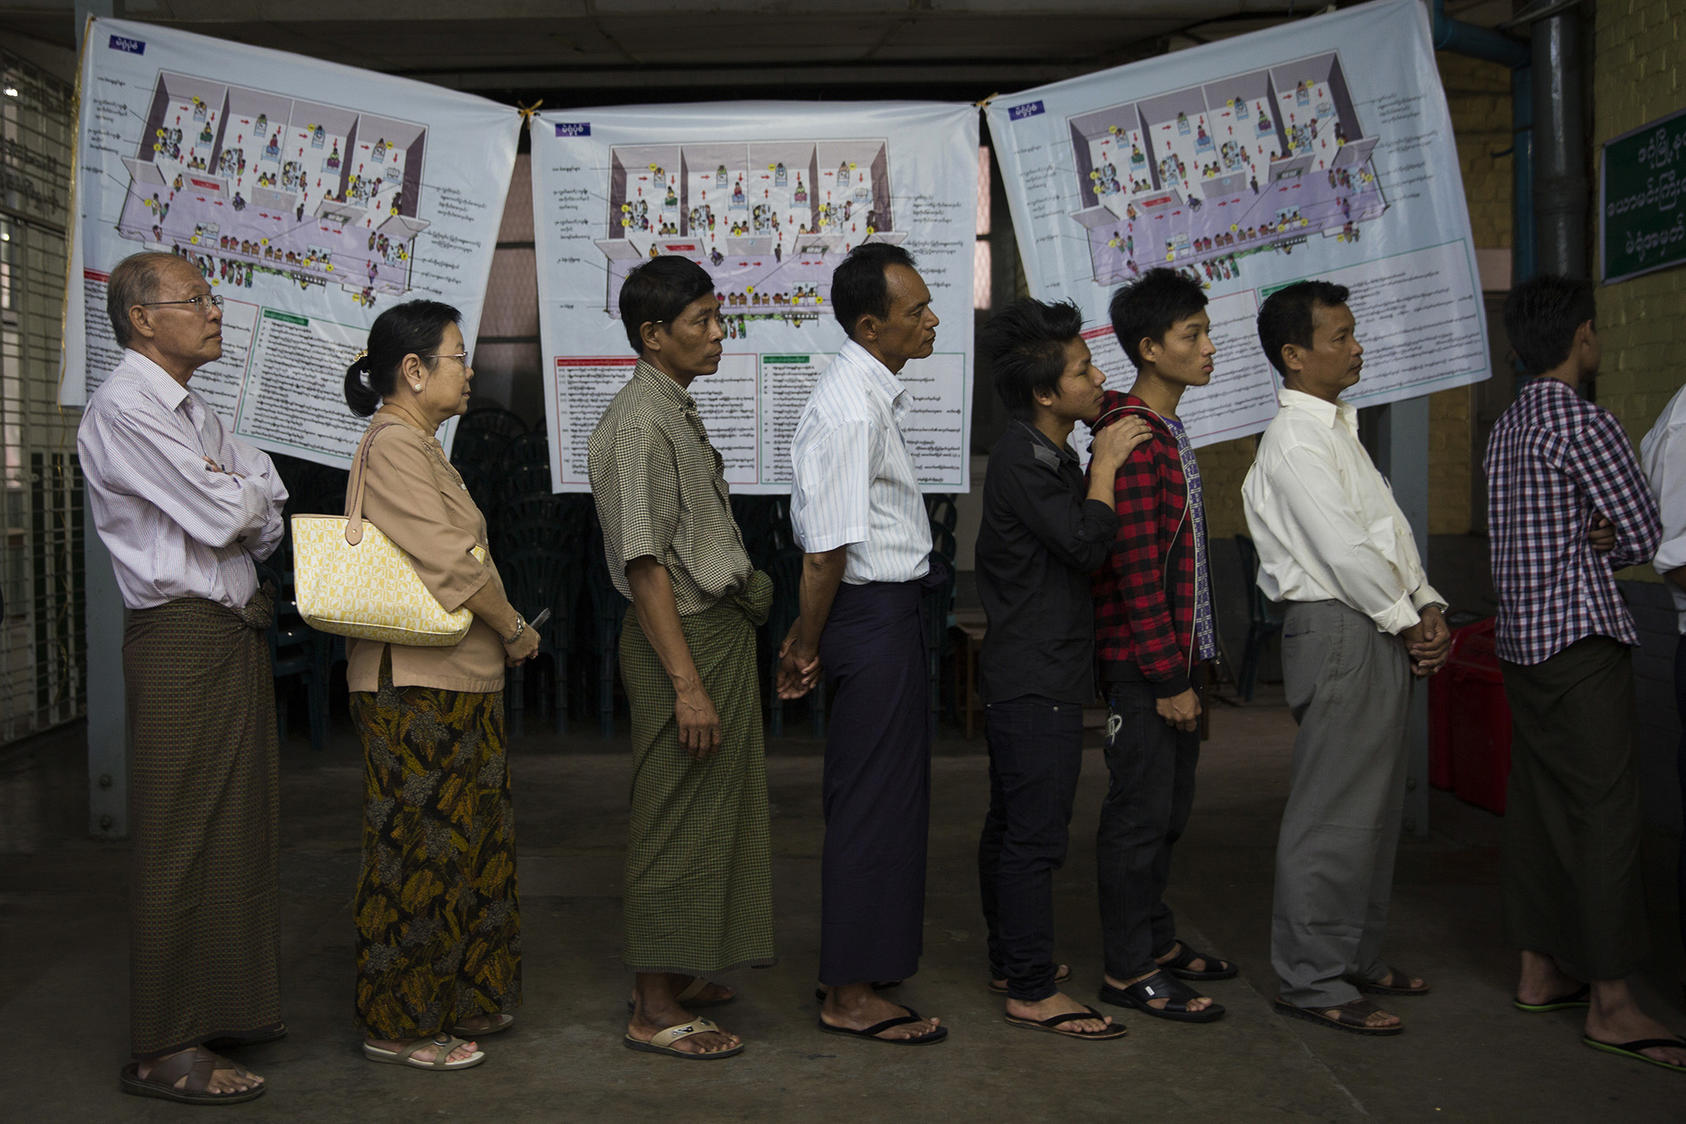 Voters line up at a polling station in Dagon High School in the Dagon township of Yangon, Myanmar, Nov. 8, 2015. (Adam Dean/The New York Times)